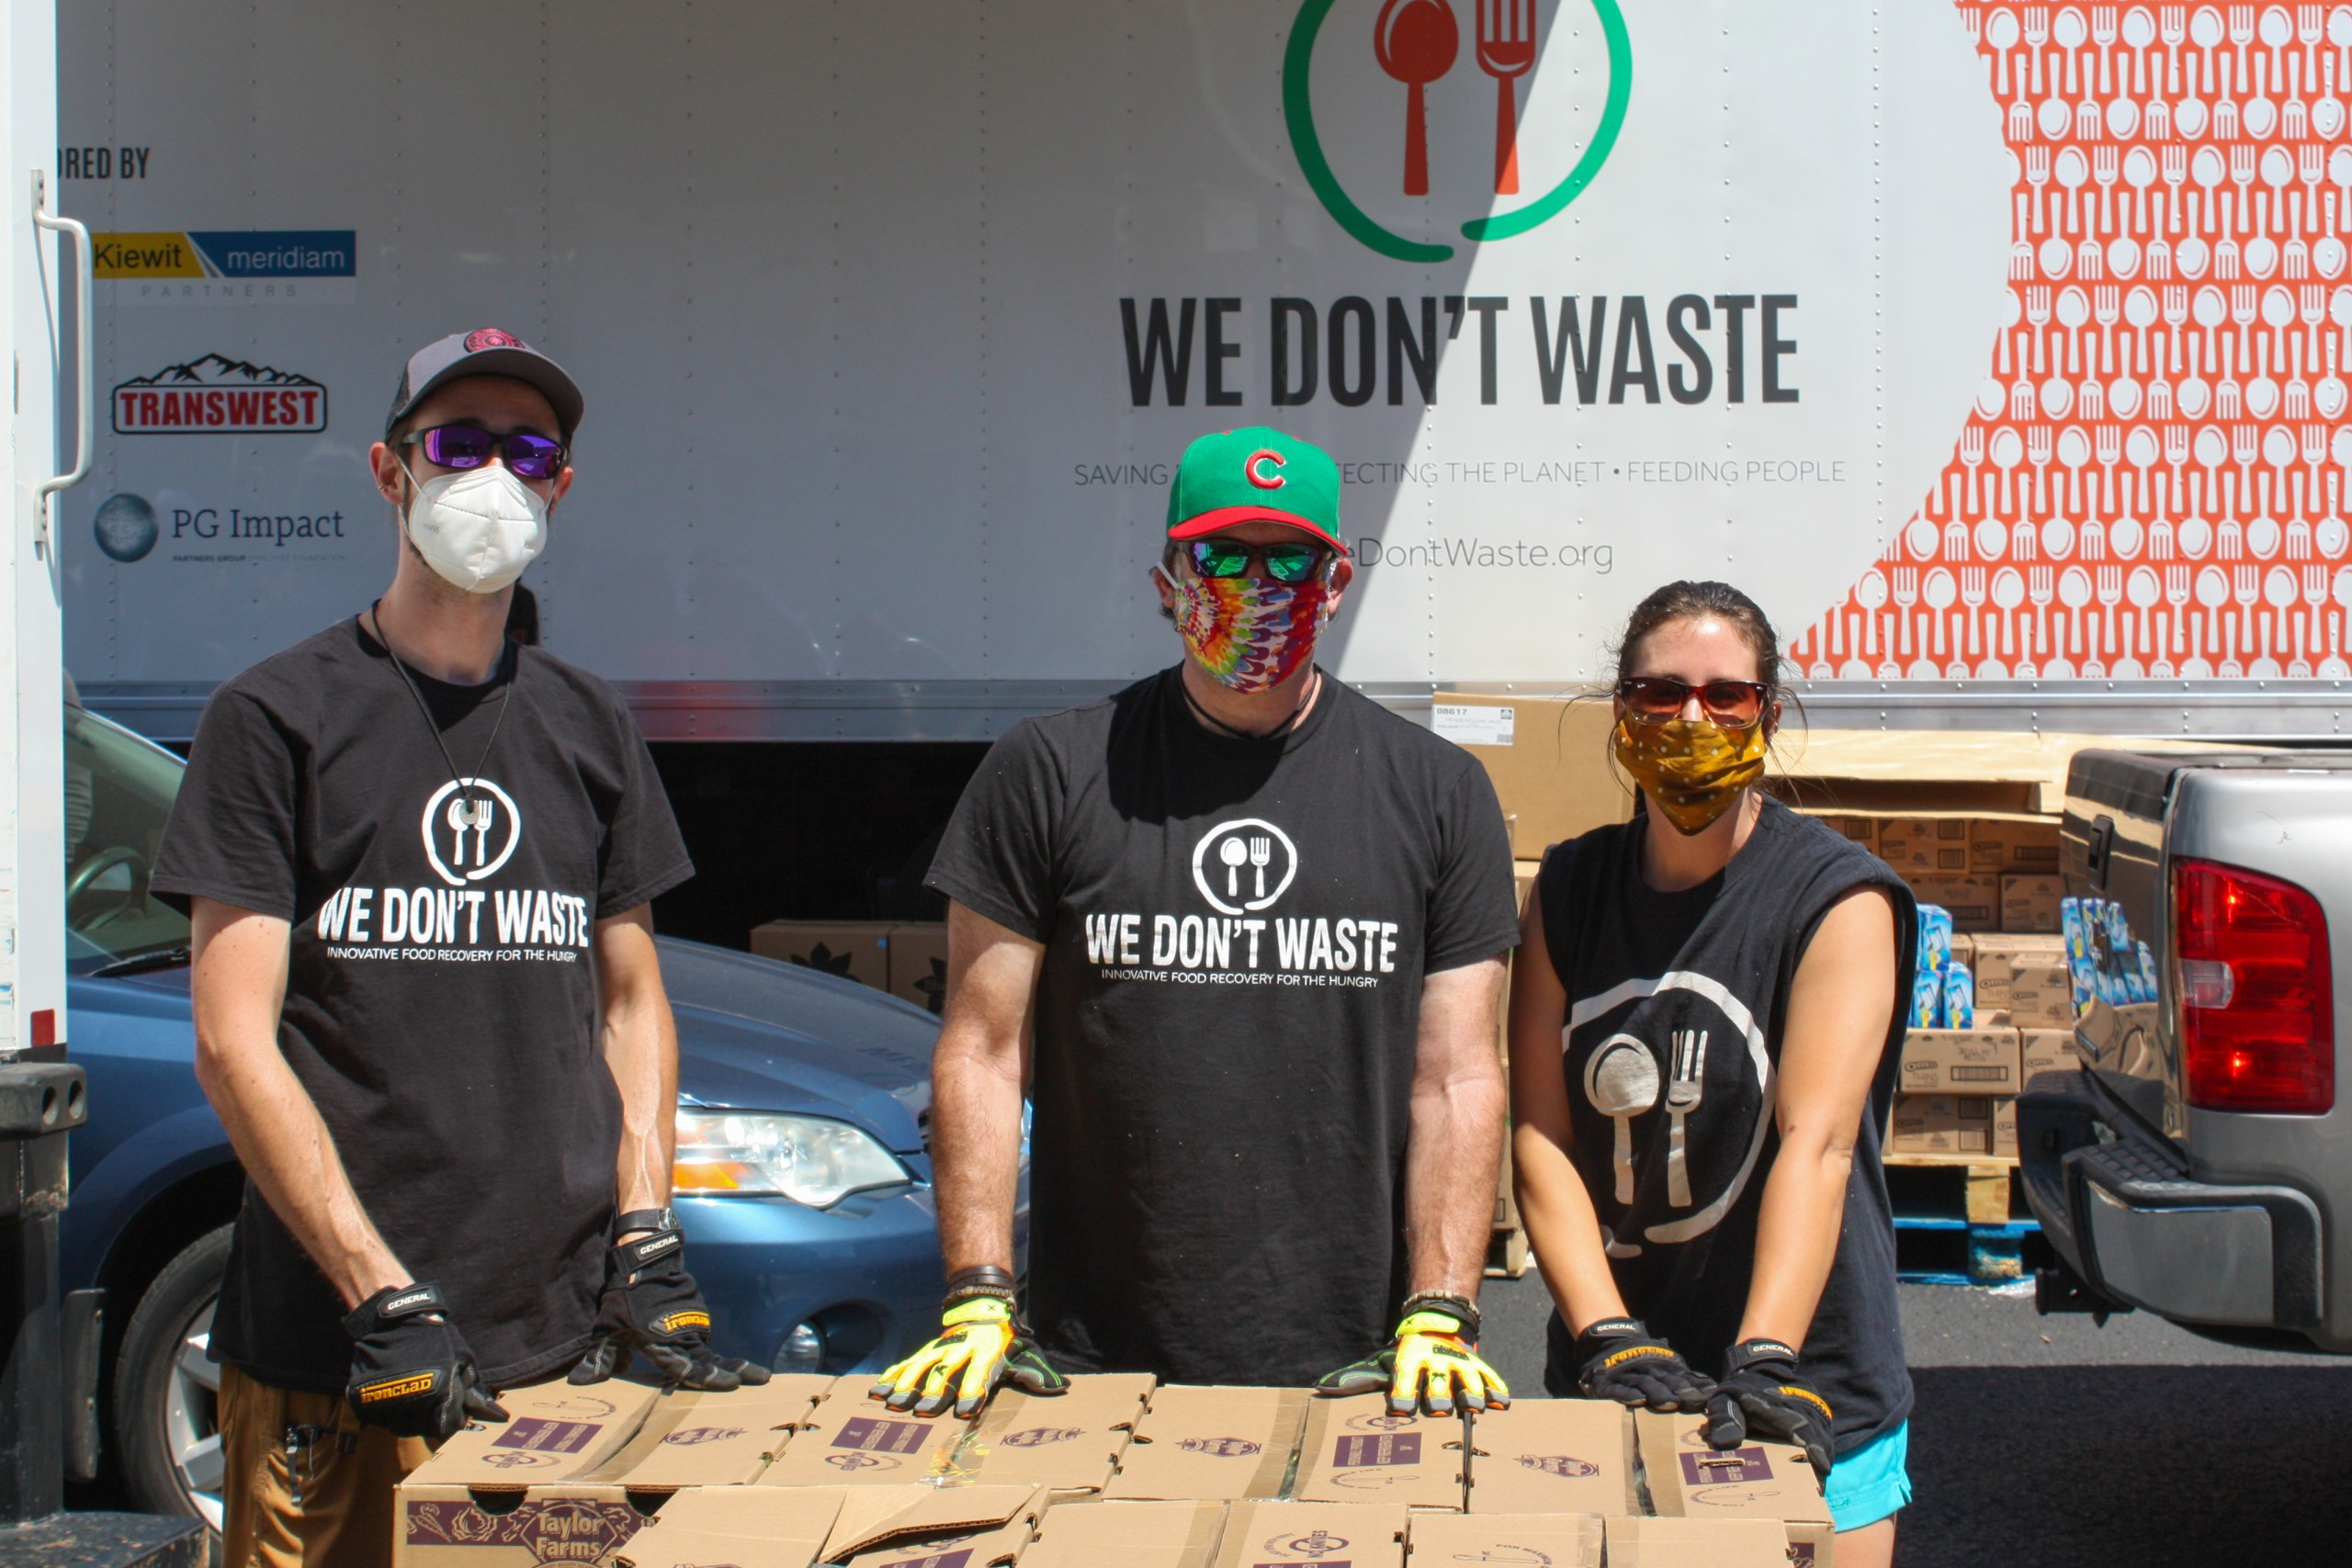 We Dont Waste Mobile Market Volunteers With Truck